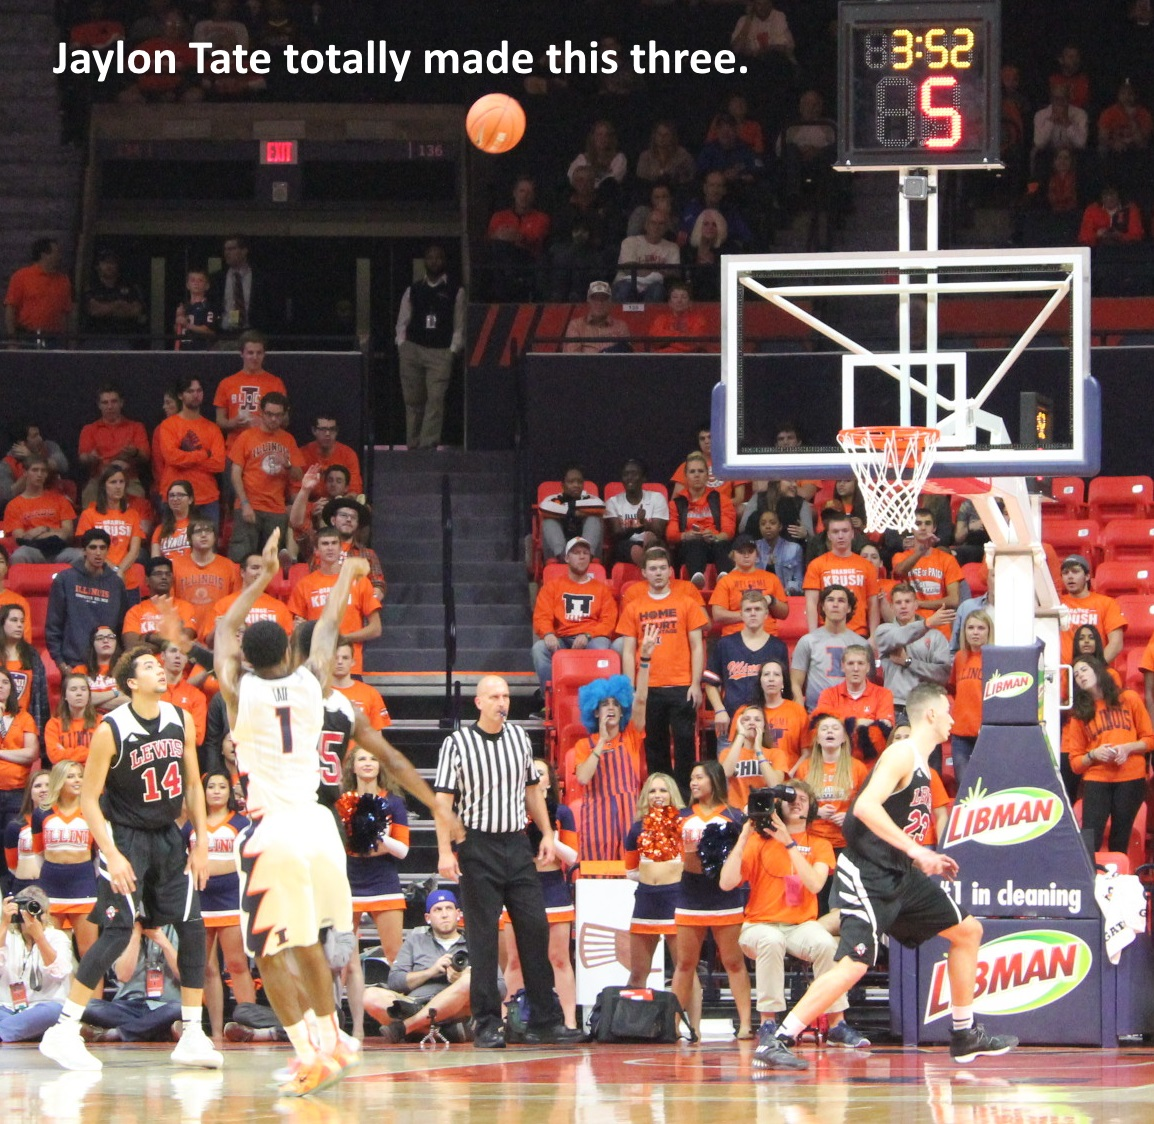 jaylon-tate-three